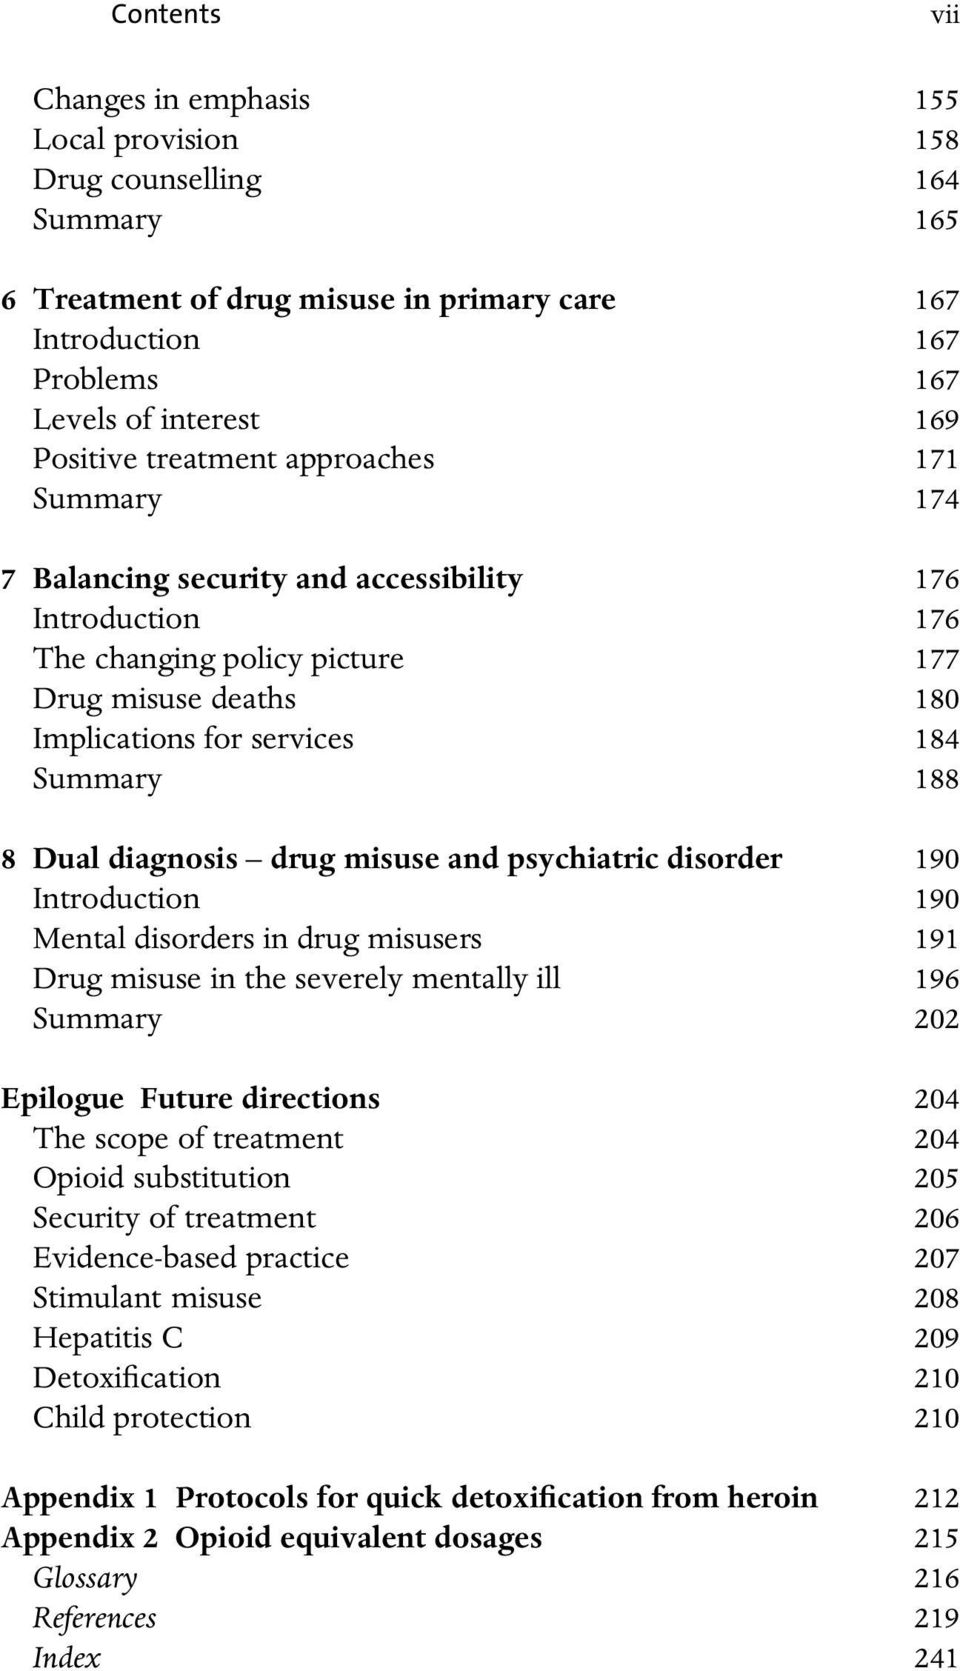 Dual diagnosis drug misuse and psychiatric disorder 190 Introduction 190 Mental disorders in drug misusers 191 Drug misuse in the severely mentally ill 196 Summary 202 Epilogue Future directions 204